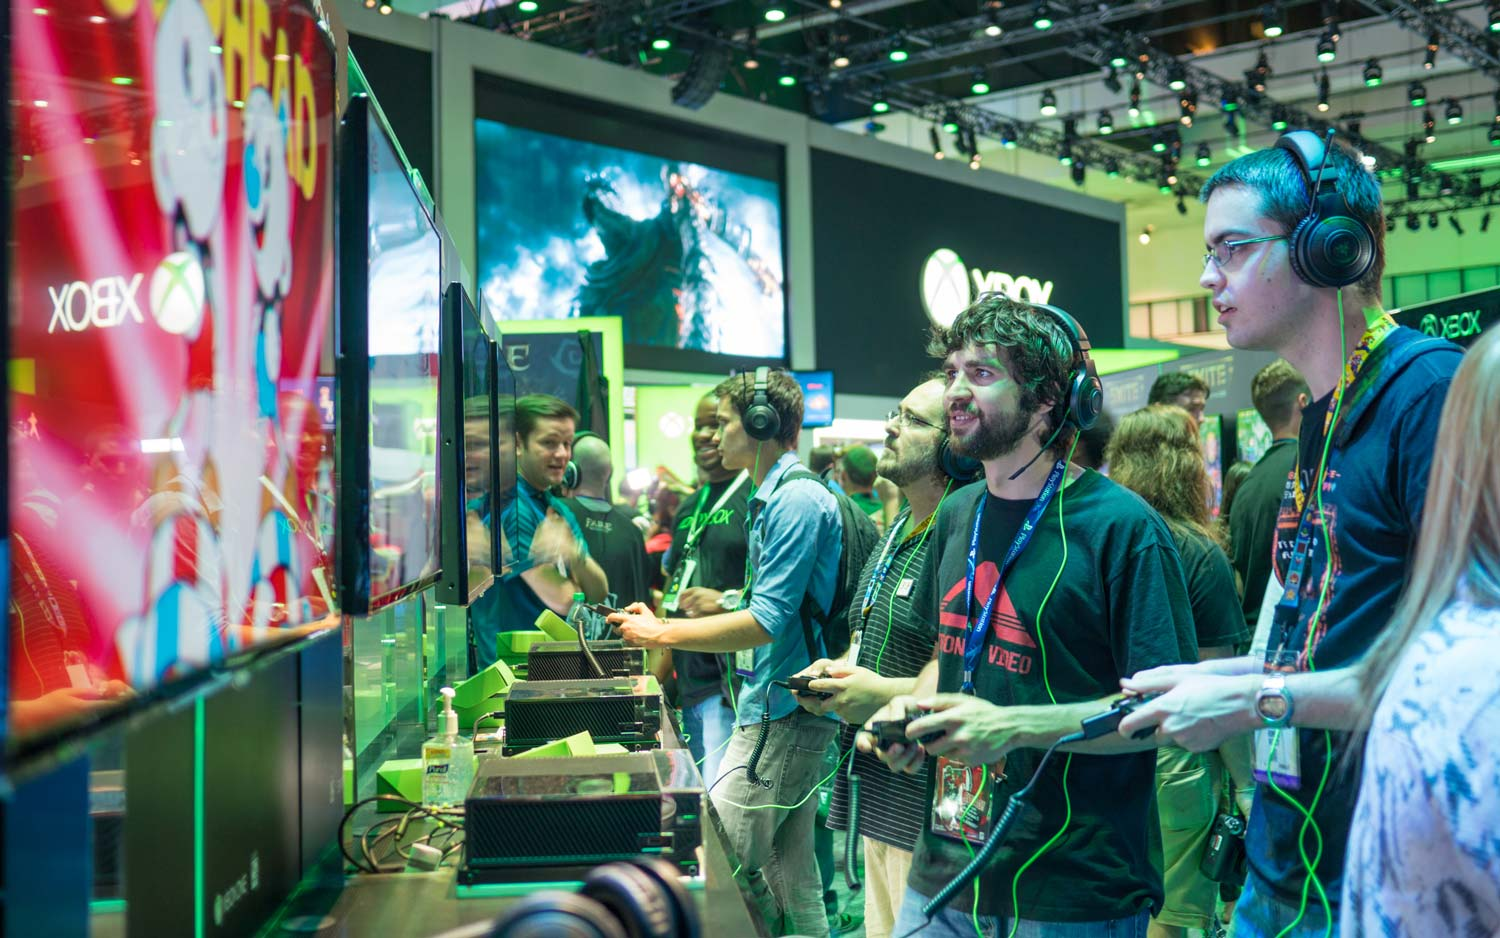 E3 2019: Press Conferences, Top Games and Latest News